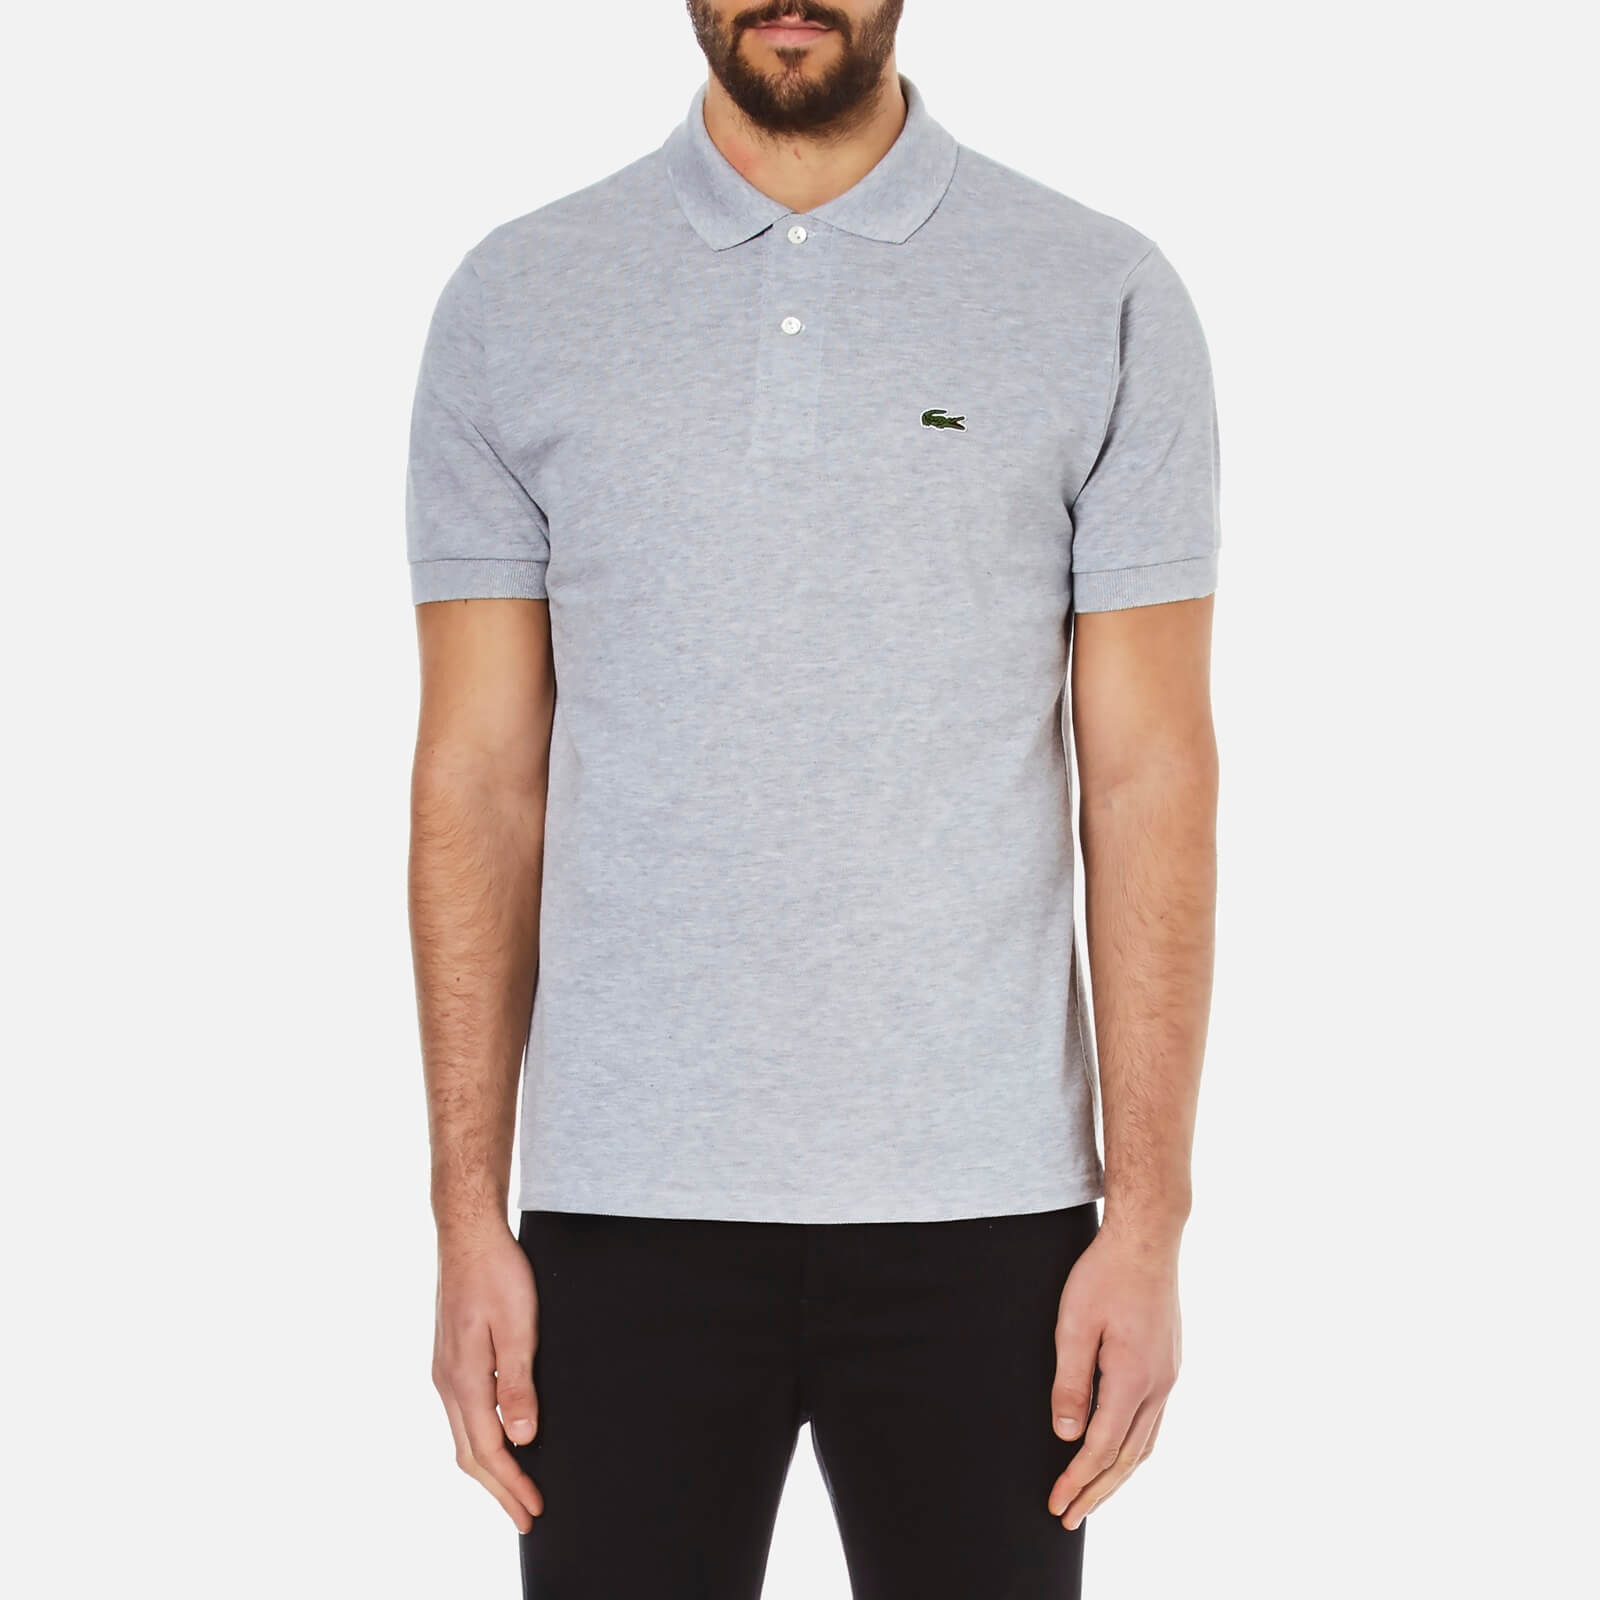 d3d94356b1 Lacoste Men's Classic Fit Marl Pique Polo Shirt - Silver Chine